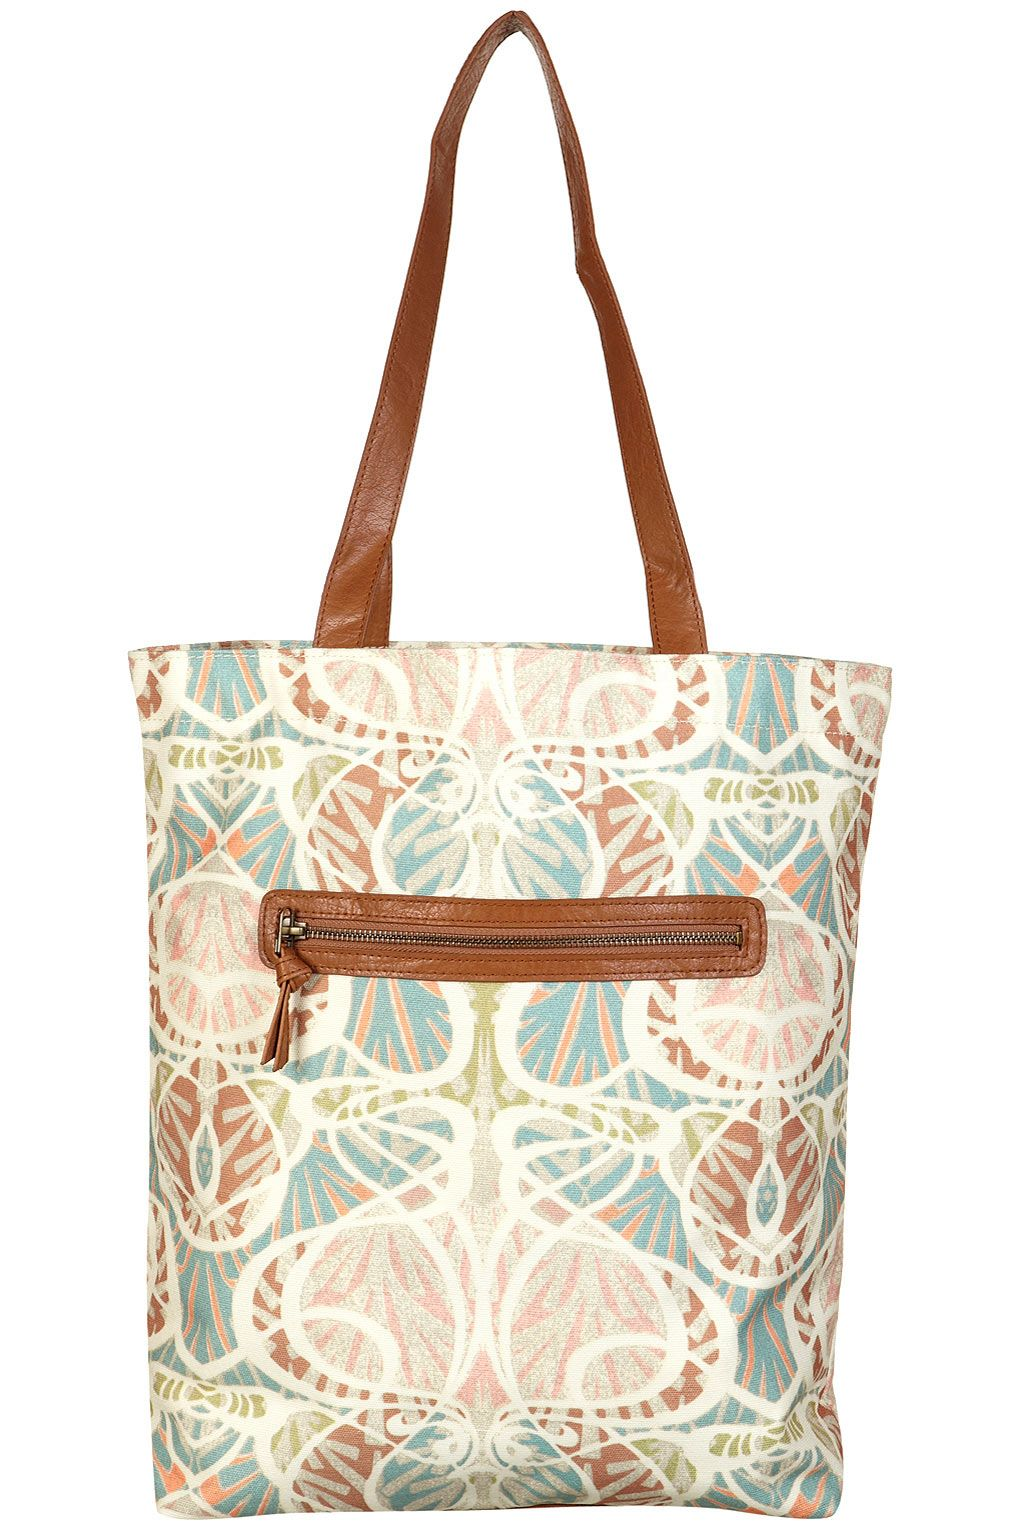 NOUVEAUX PRINTED SHOPPER